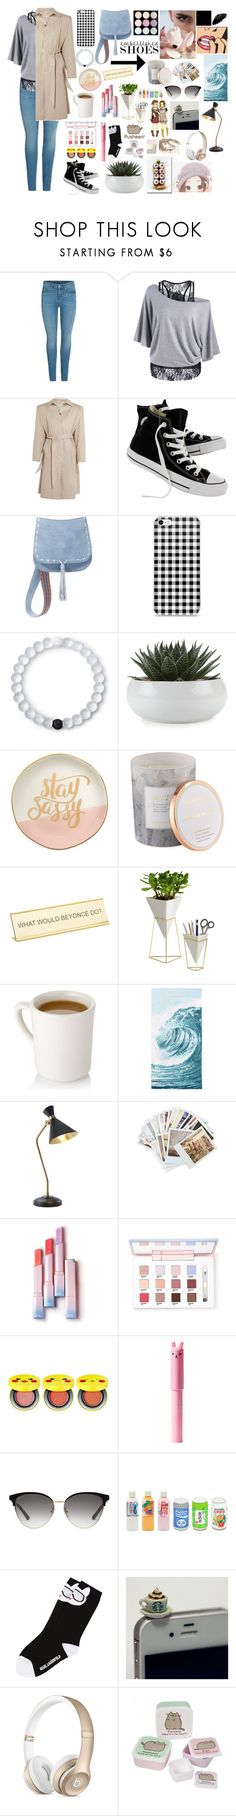 """""""M.S.J"""" by ali-0 ❤ liked on Polyvore featuring Balenciaga, Converse, Steve Madden, Lokai, Slant, D.L. & Co., He Said, She Said, Umbra, PBteen and Global Views"""